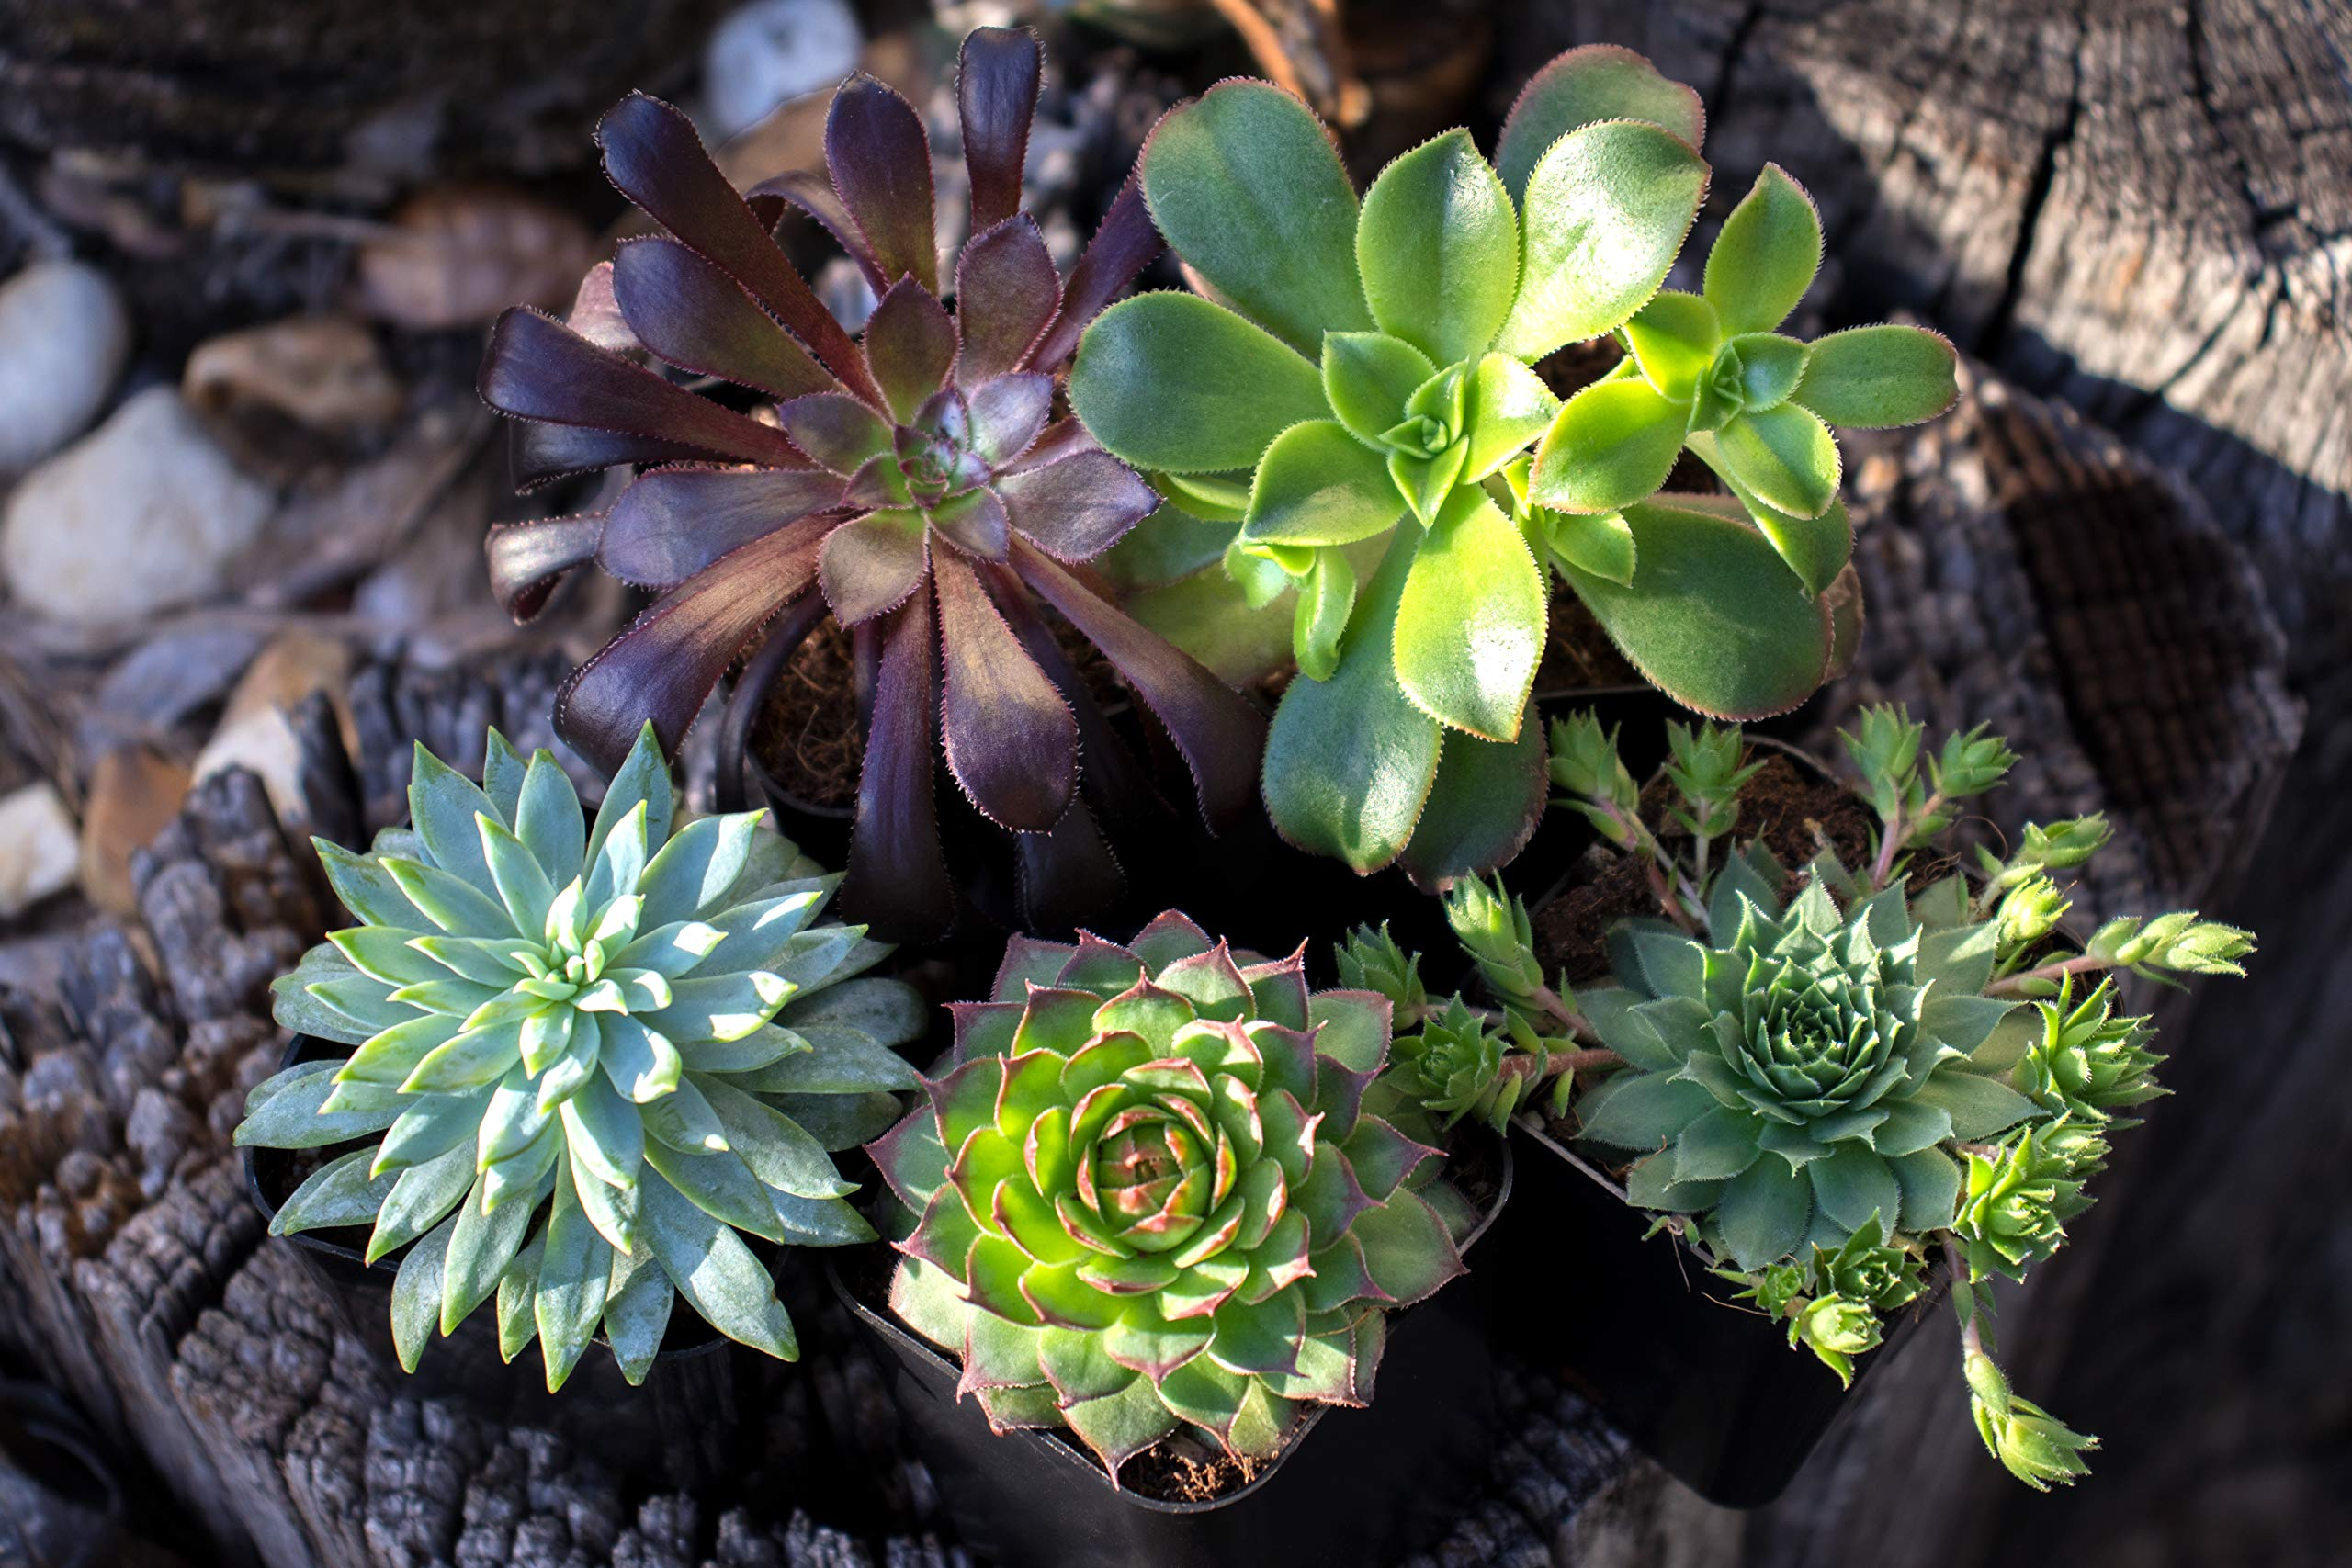 Succulent Plants (20 Pack) Fully Rooted in Planter Pots with Soil | Real Live Potted Succulents / Unique Indoor Cactus Decor by Plants for Pets 5 HAND SELECTED: Every pack of succulents we send is hand-picked. You will receive a unique collection of species that are fully rooted and similar to the product photos. Note that we rotate our nursery stock often, so the exact species we send changes every week. THE EASIEST HOUSE PLANTS: More appealing than artificial plastic or fake faux plants, and care is a cinch. If you think you can't keep houseplants alive, you're wrong; our succulents don't require fertilizer and can be planted in a decorative pot of your choice within seconds. DIY HOME DECOR: The possibilities are only limited by your imagination; display them in a plant holder, a wall mount, a geometric glass vase, or even in a live wreath. Because of their amazingly low care requirements, they can even make the perfect desk centerpiece for your office.